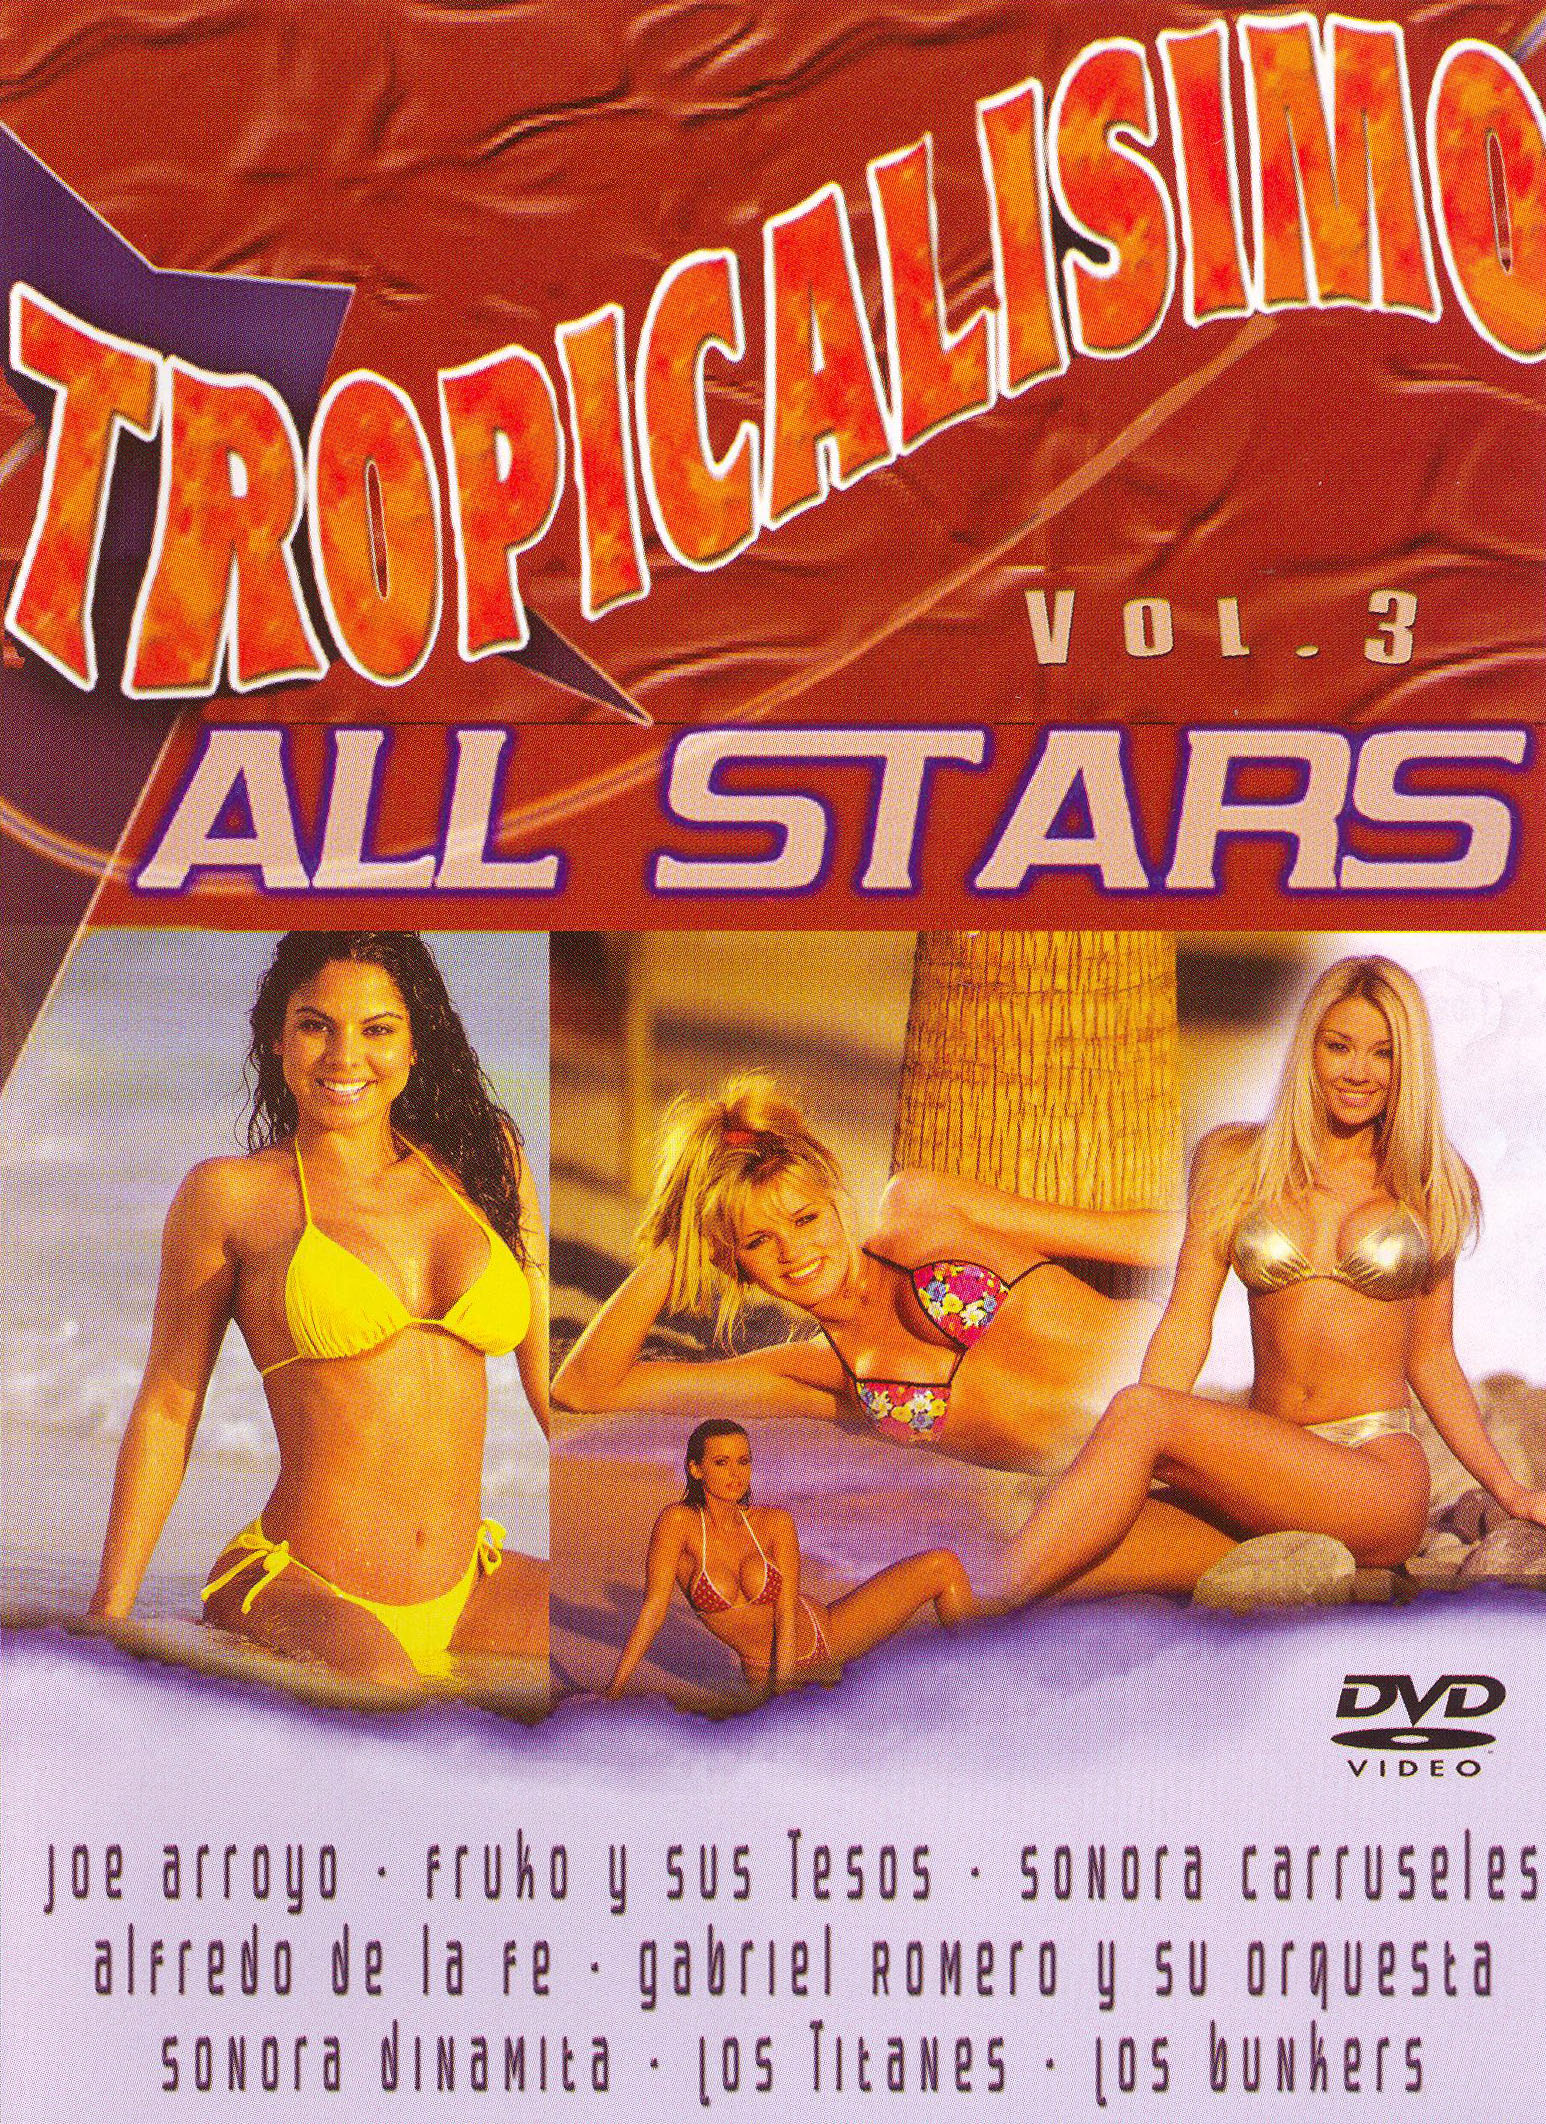 Tropicalisimo All Stars, Vol. 3